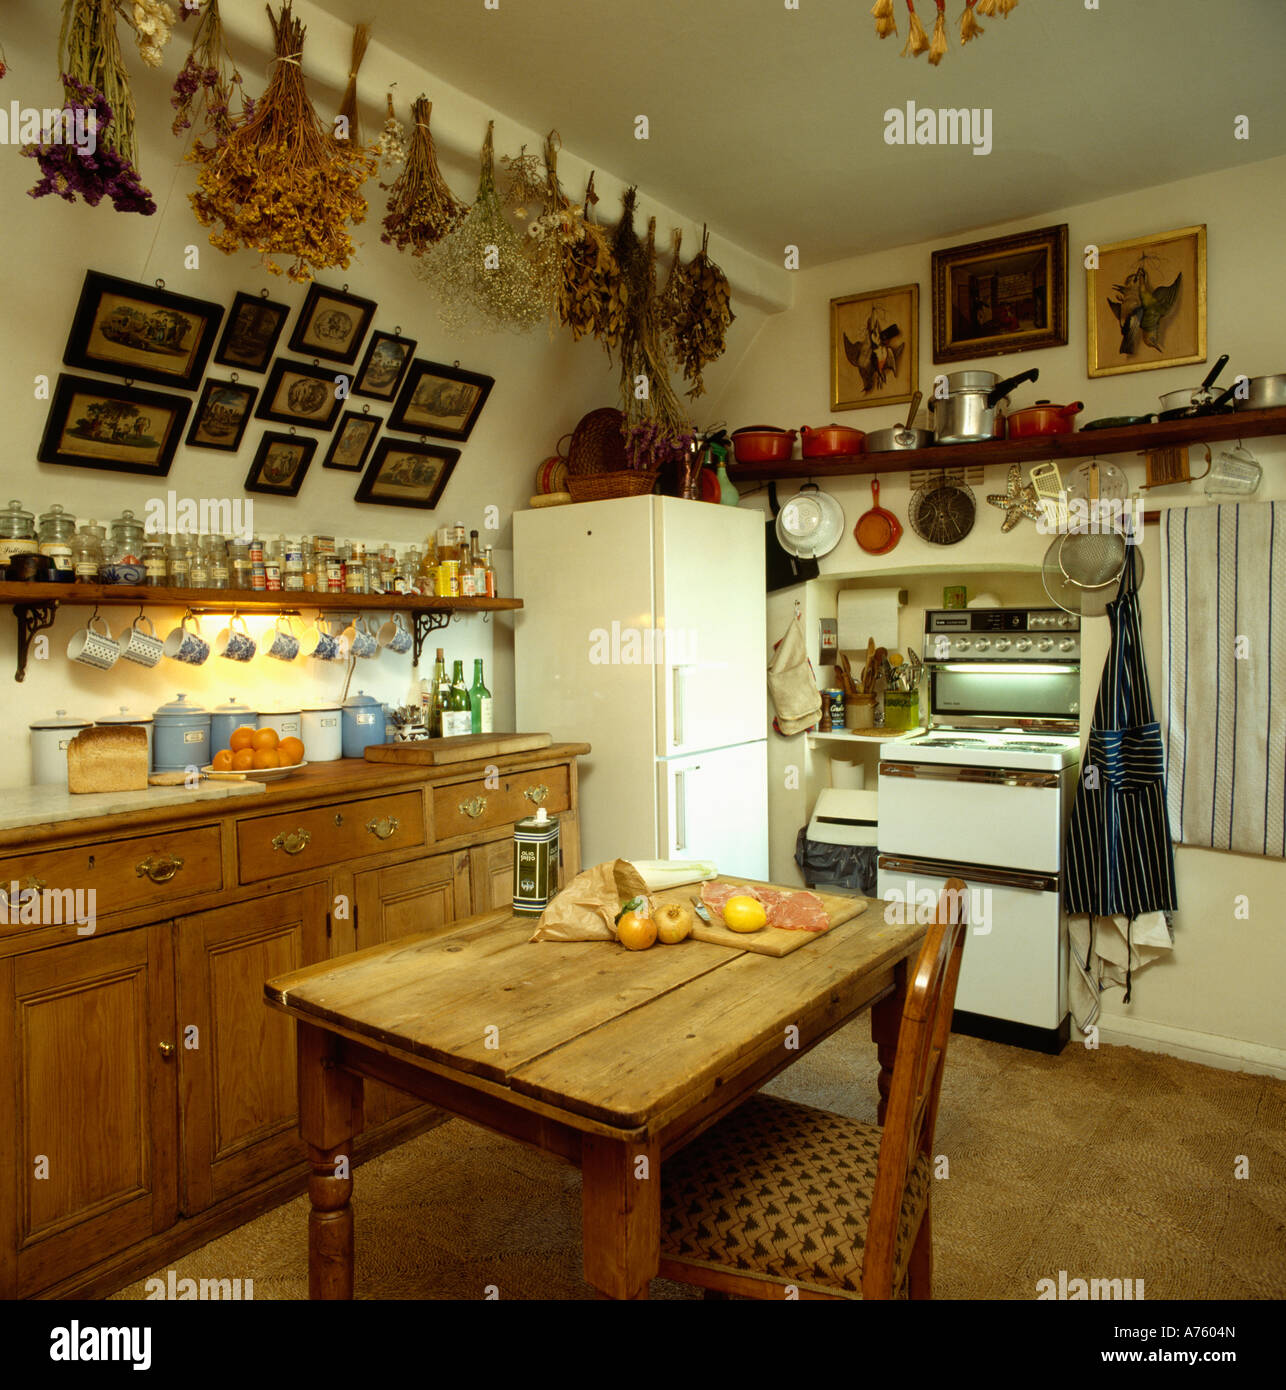 Dried flowers on sloping ceiling in small apartment kitchen with wooden dining table